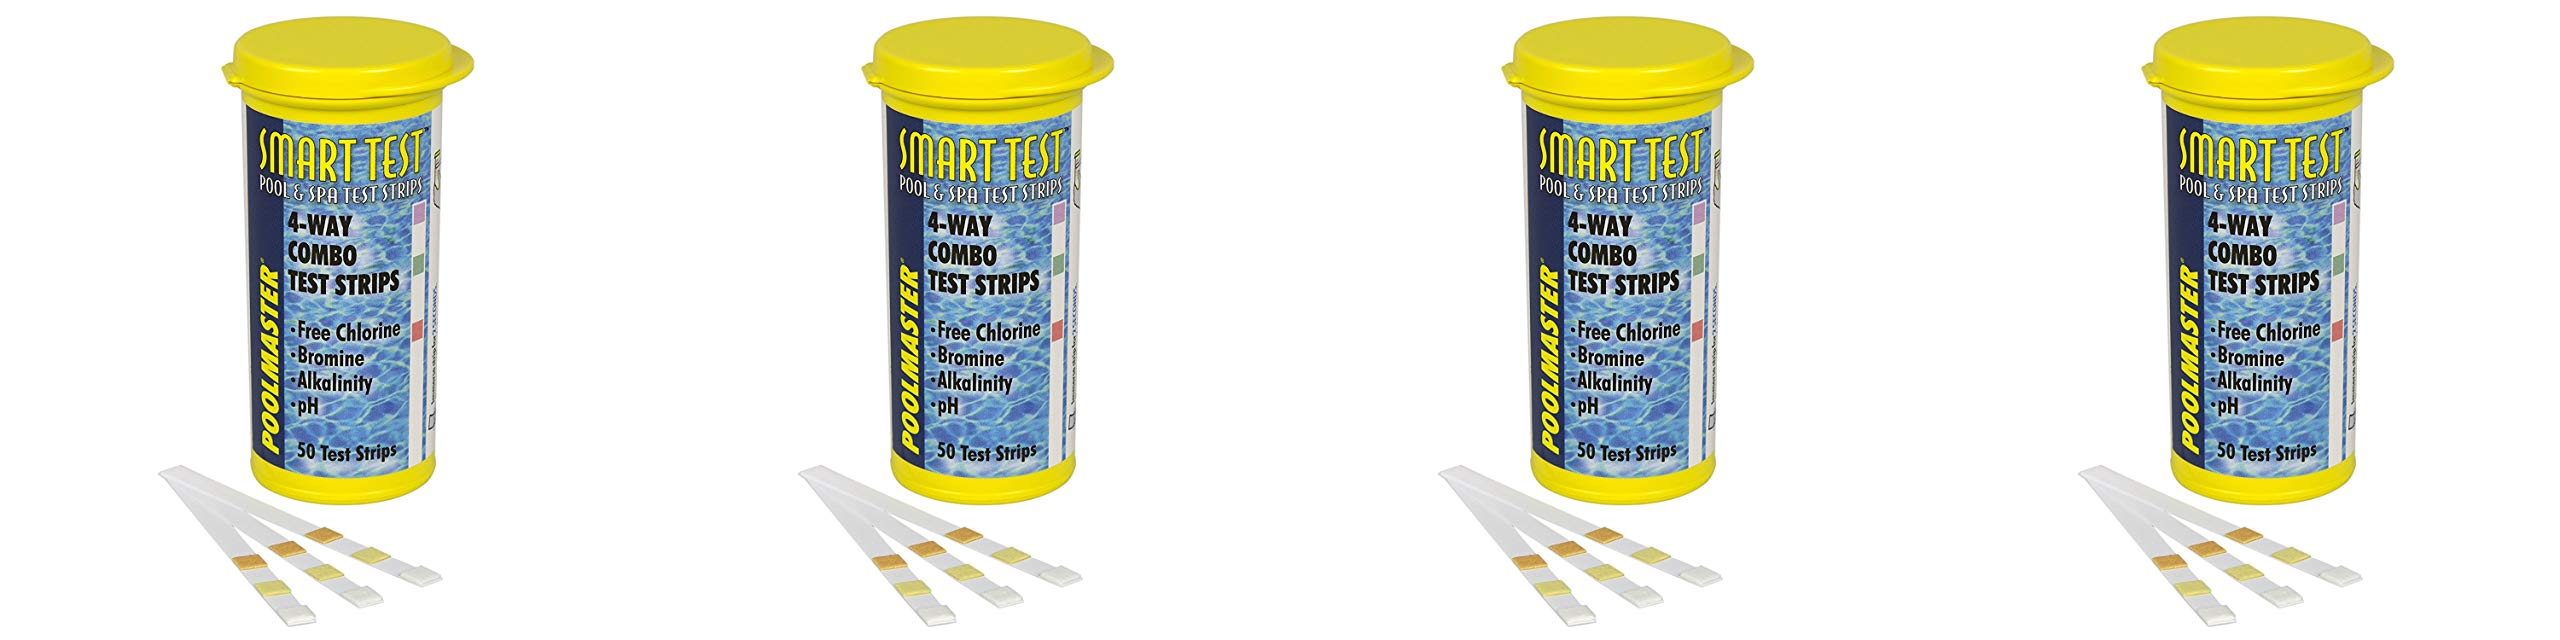 Poolmaster 22211 Smart Test 4-Way Swimming Pool and Spa Water Chemistry Test Strips, 50 Count - Pack 4 by Poolmaster